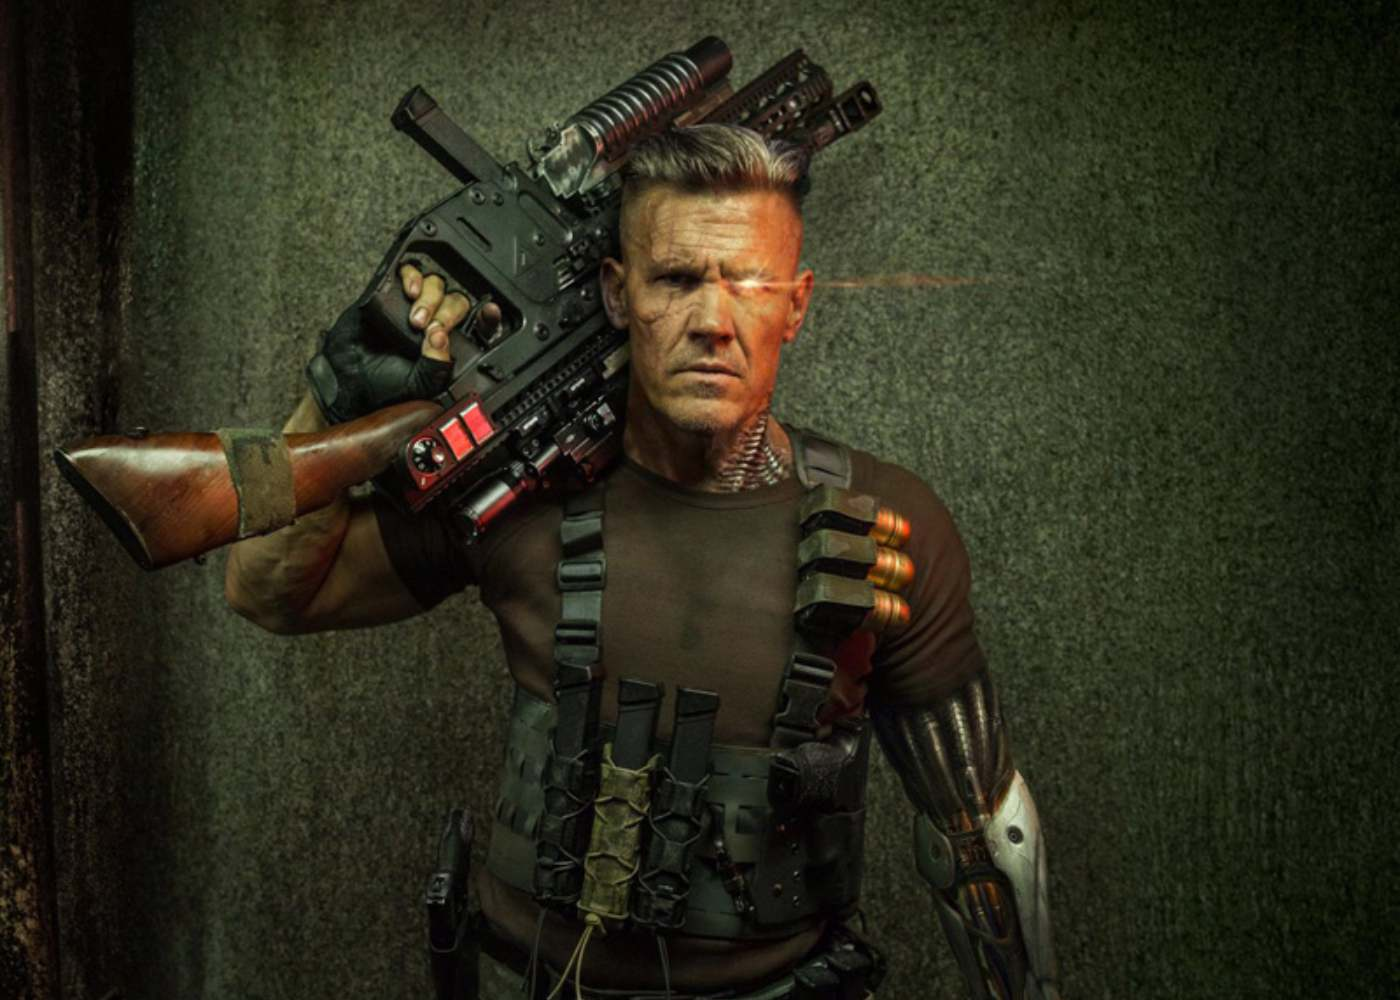 Your First Look at Josh Brolin's Cable in Deadpool 2